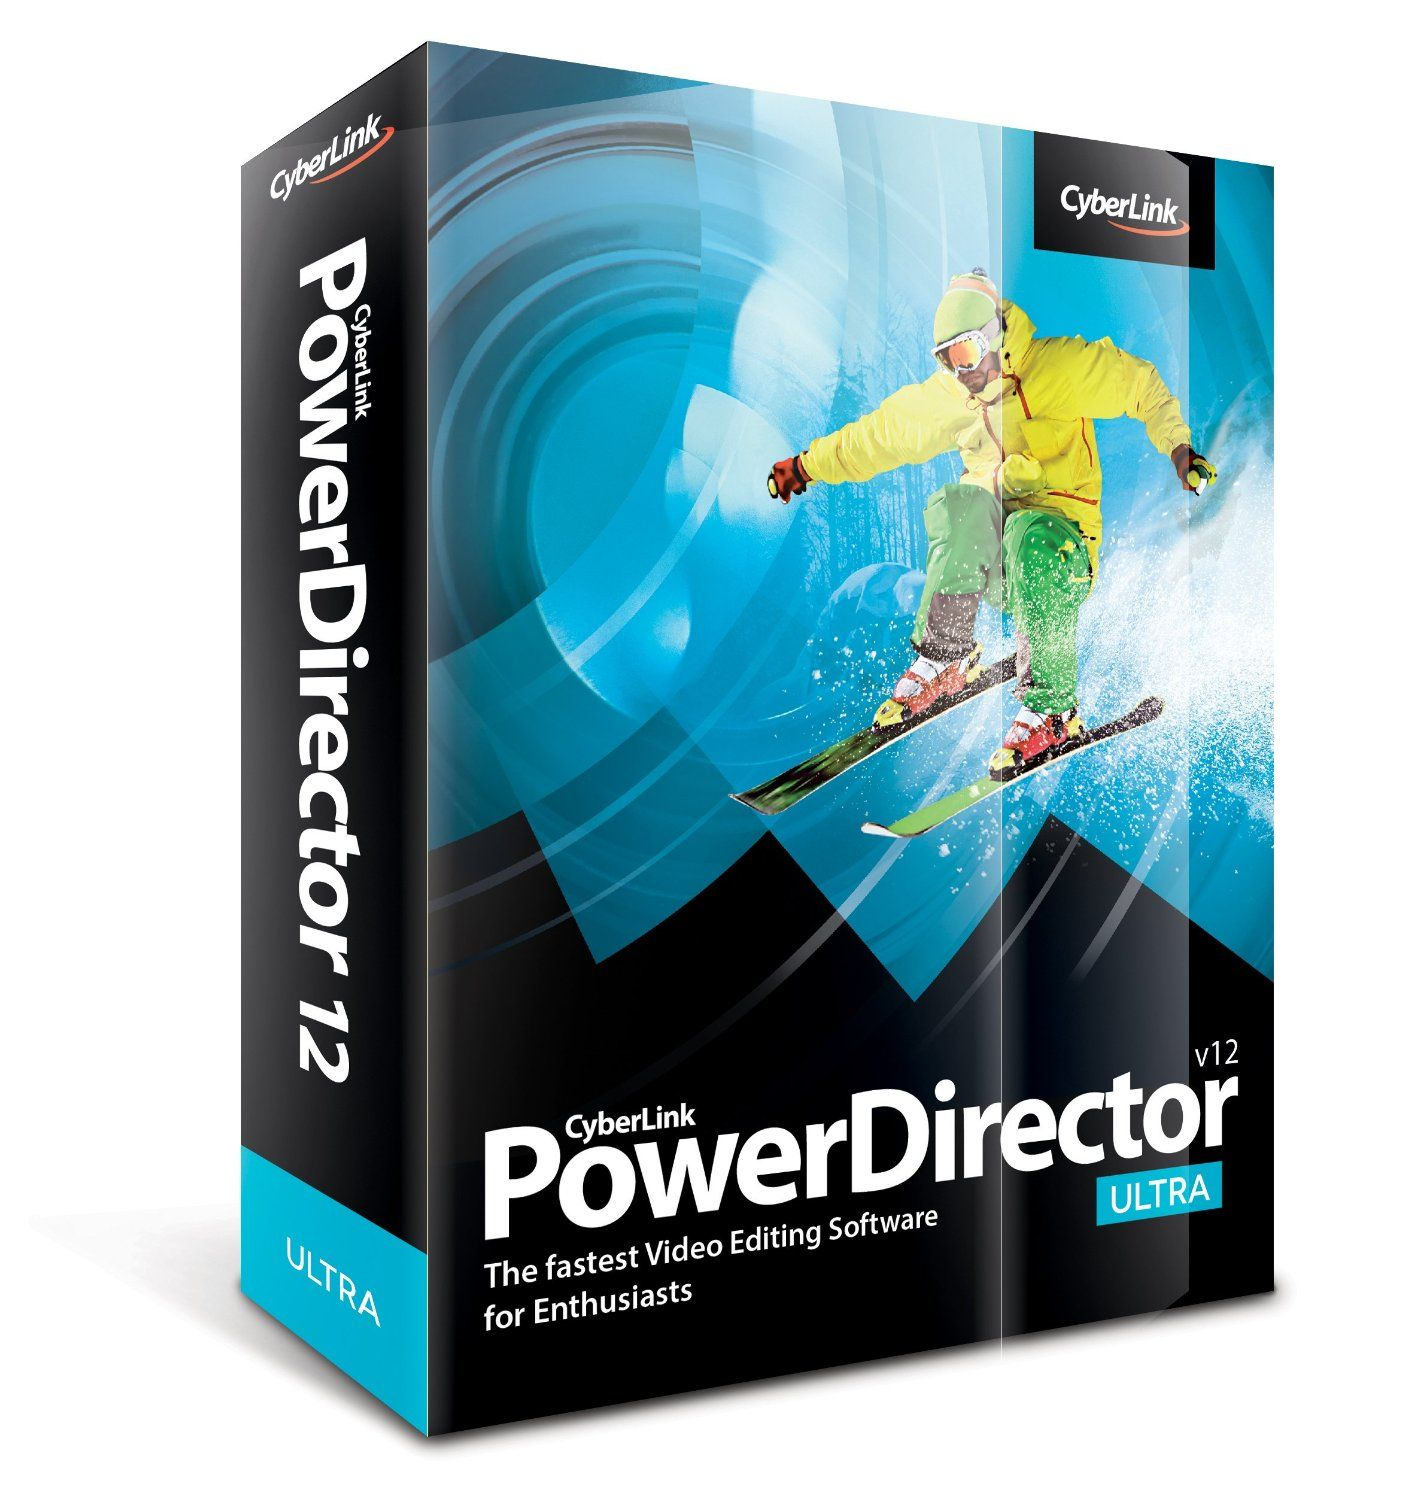 cyberlink powerdirector 12 activation key free download